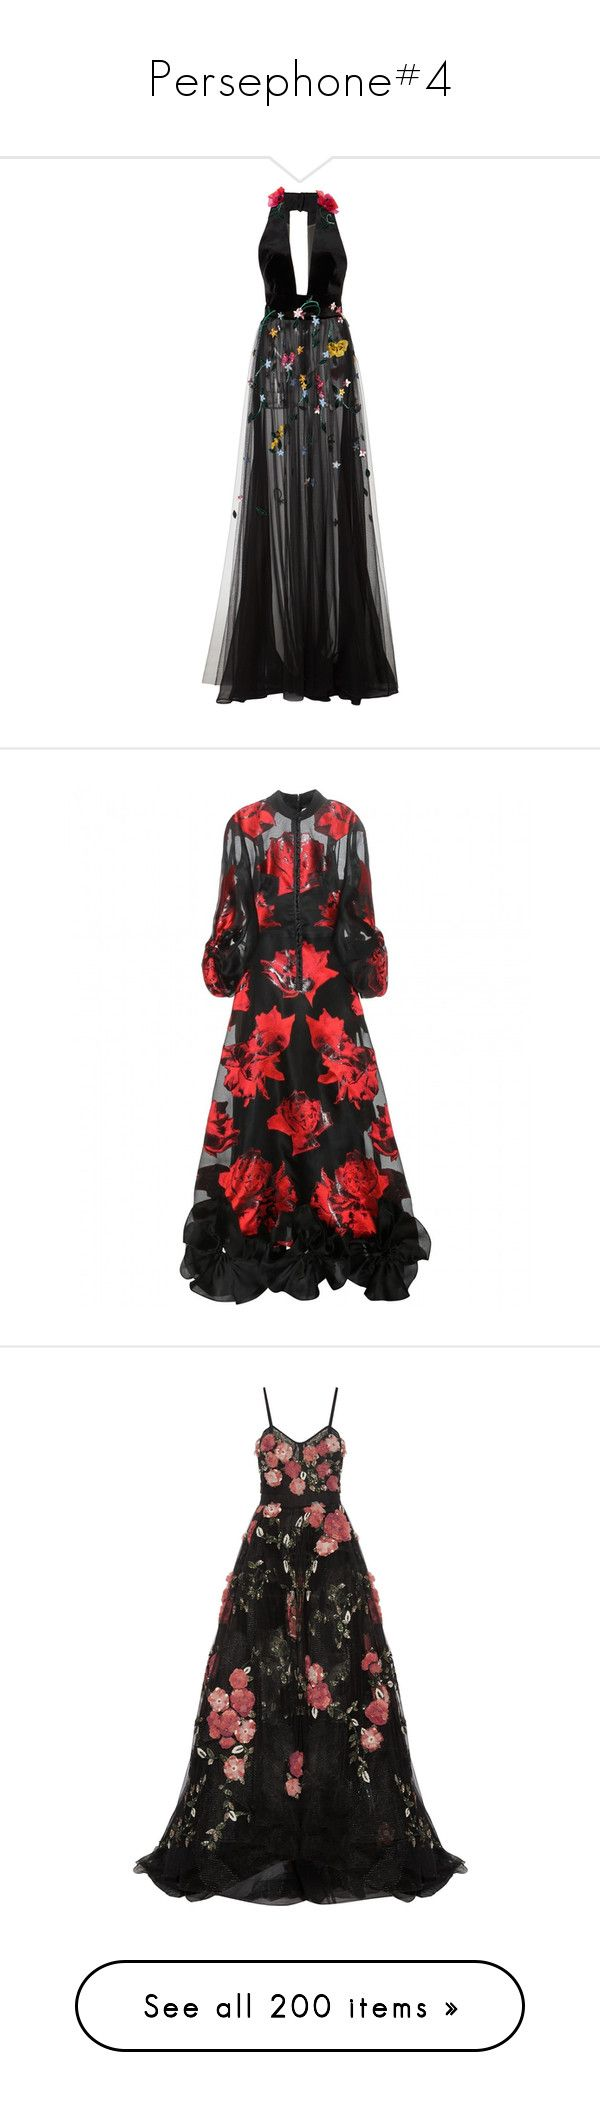 """""""Persephone#4"""" by xiuchen-was-taken ❤ liked on Polyvore featuring dresses, gowns, black, velvet dress, halter evening gowns, floral embroidered dress, floral embroidered gown, floral halter dress, dresses 3 and alexander mcqueen gowns"""